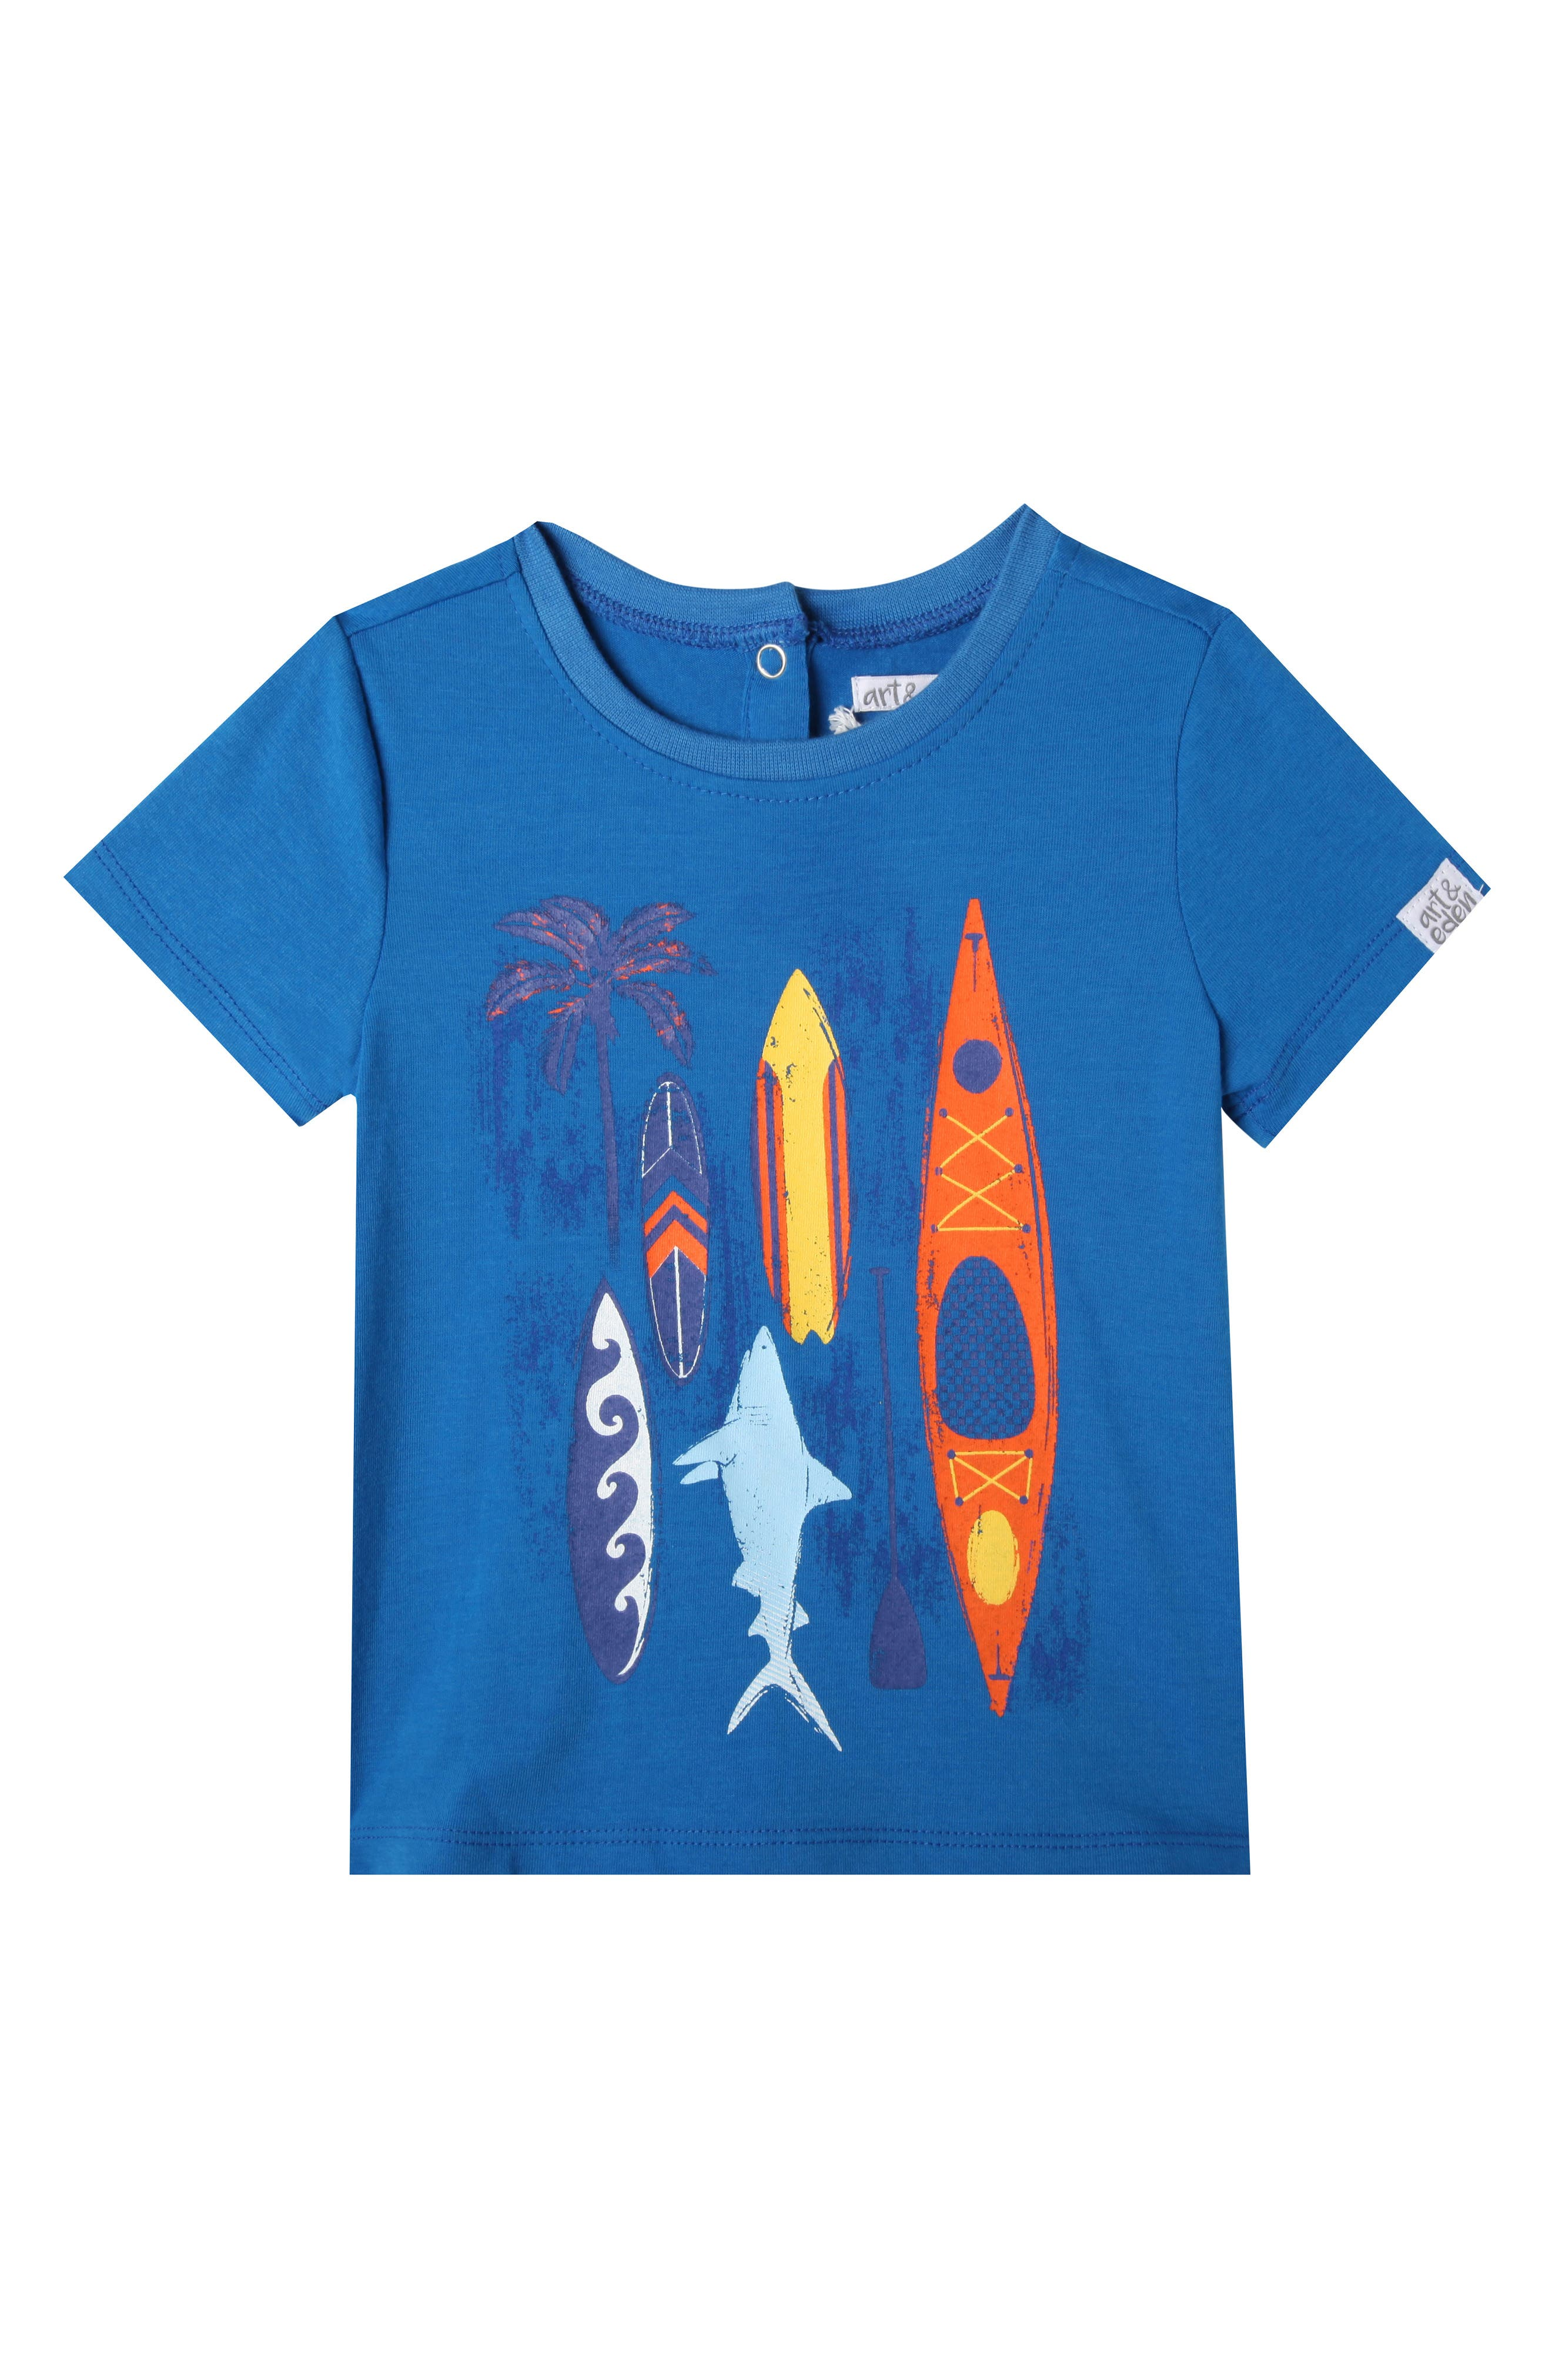 Nathan T-Shirt,                             Main thumbnail 1, color,                             FRENCH BLUE